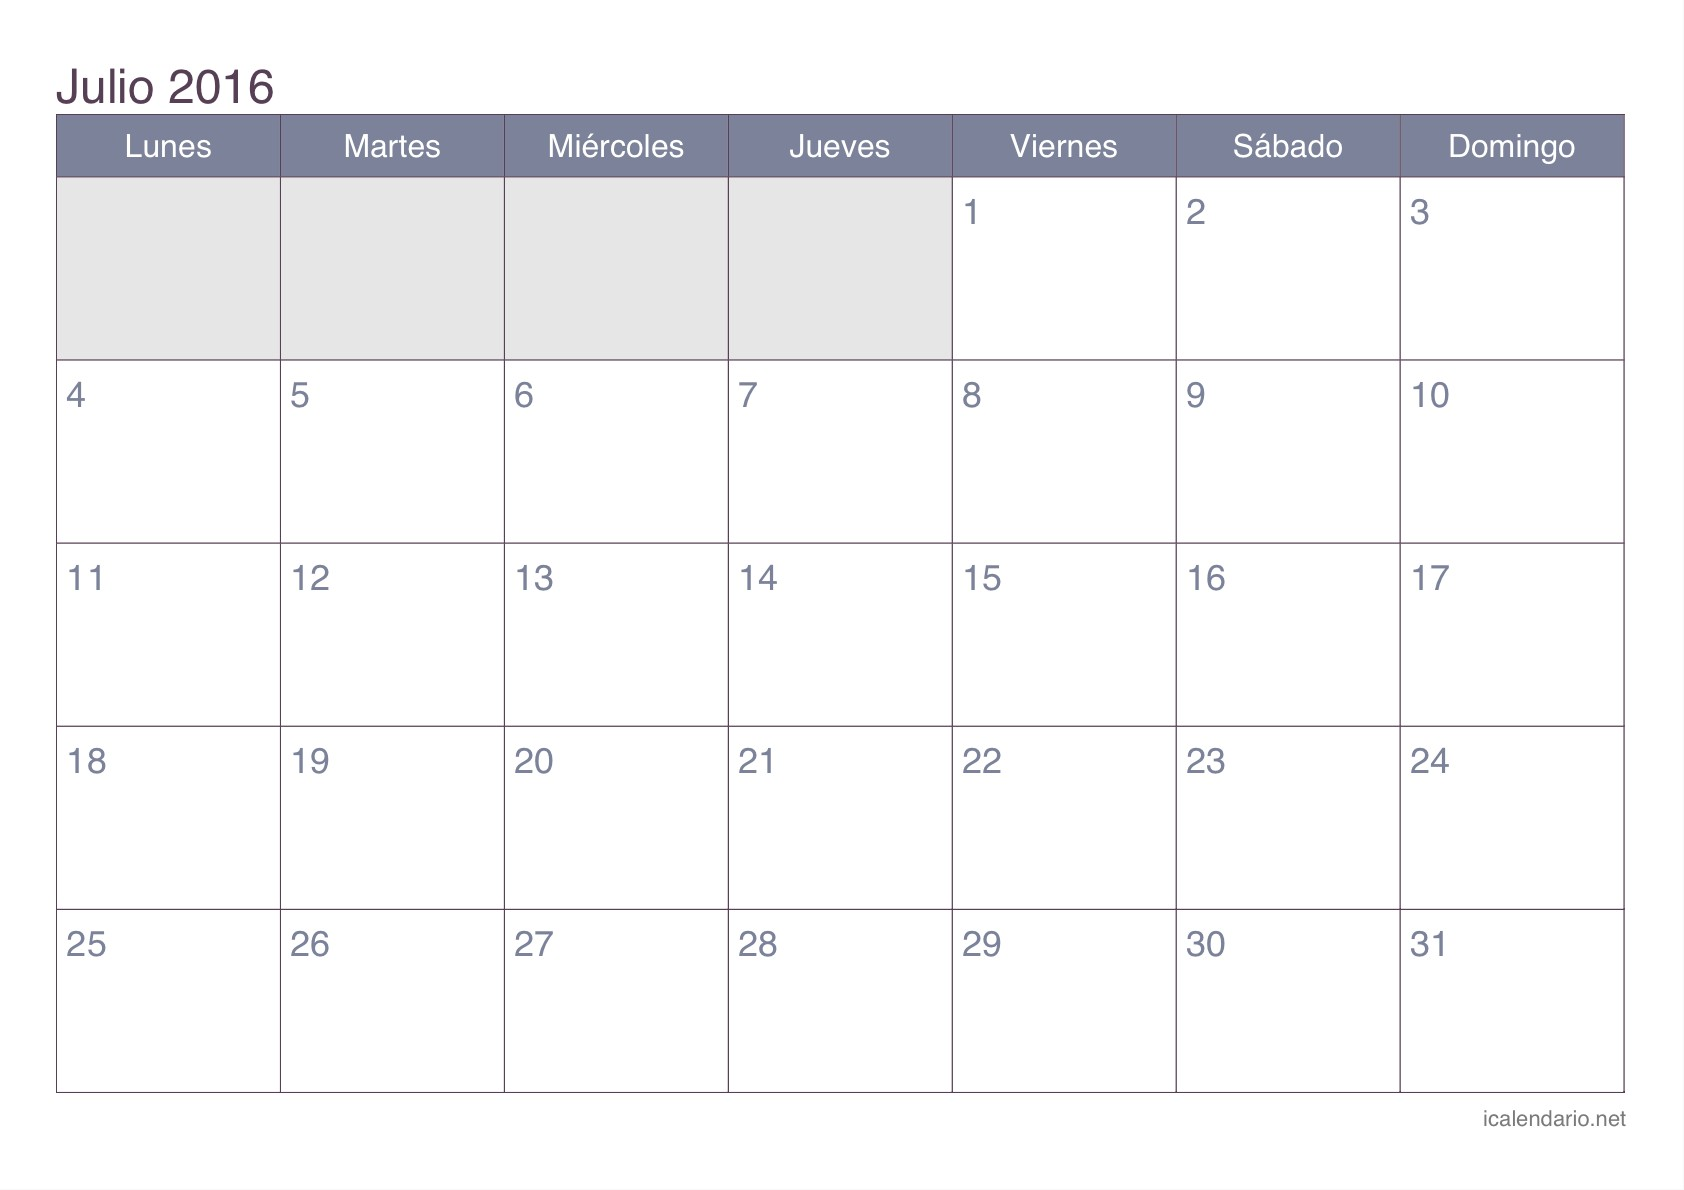 Calendario julio 2016 para imprimir for Calendario lunar de julio 2016